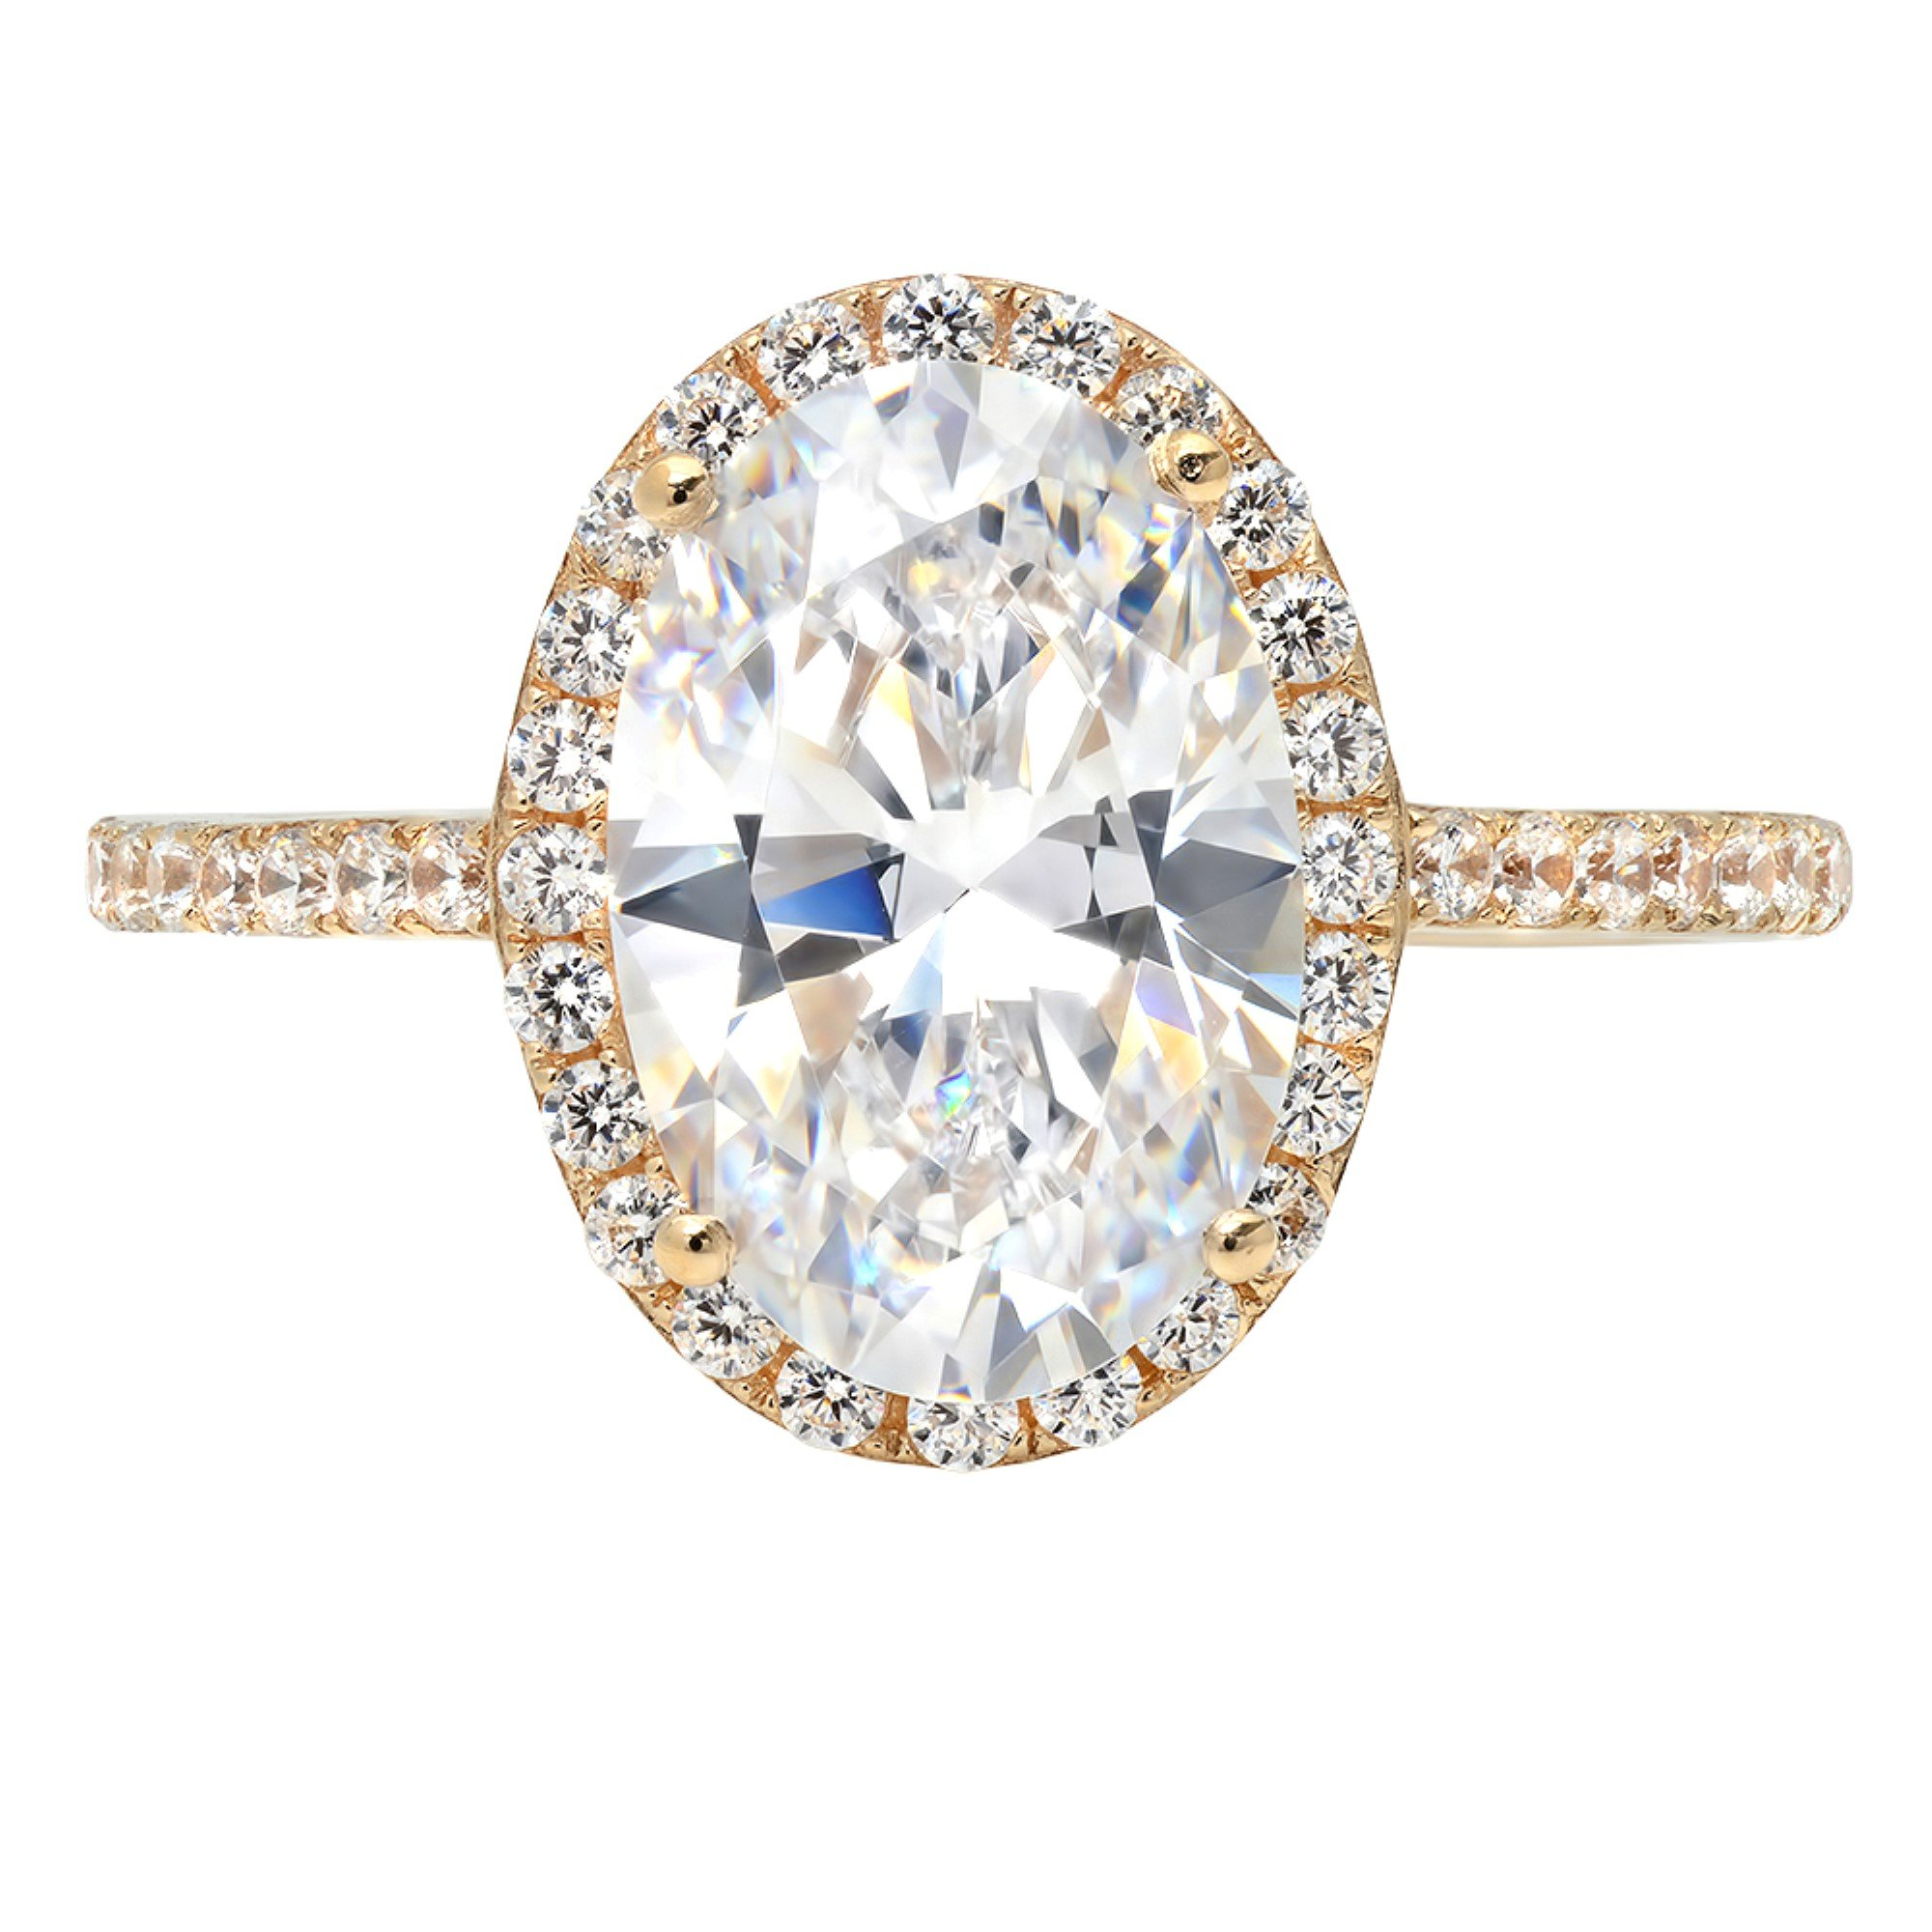 3.28ct Brilliant Oval Cut Halo Statement Wedding Anniversary Engagement Bridal Ring 14k Yellow Gold, 11